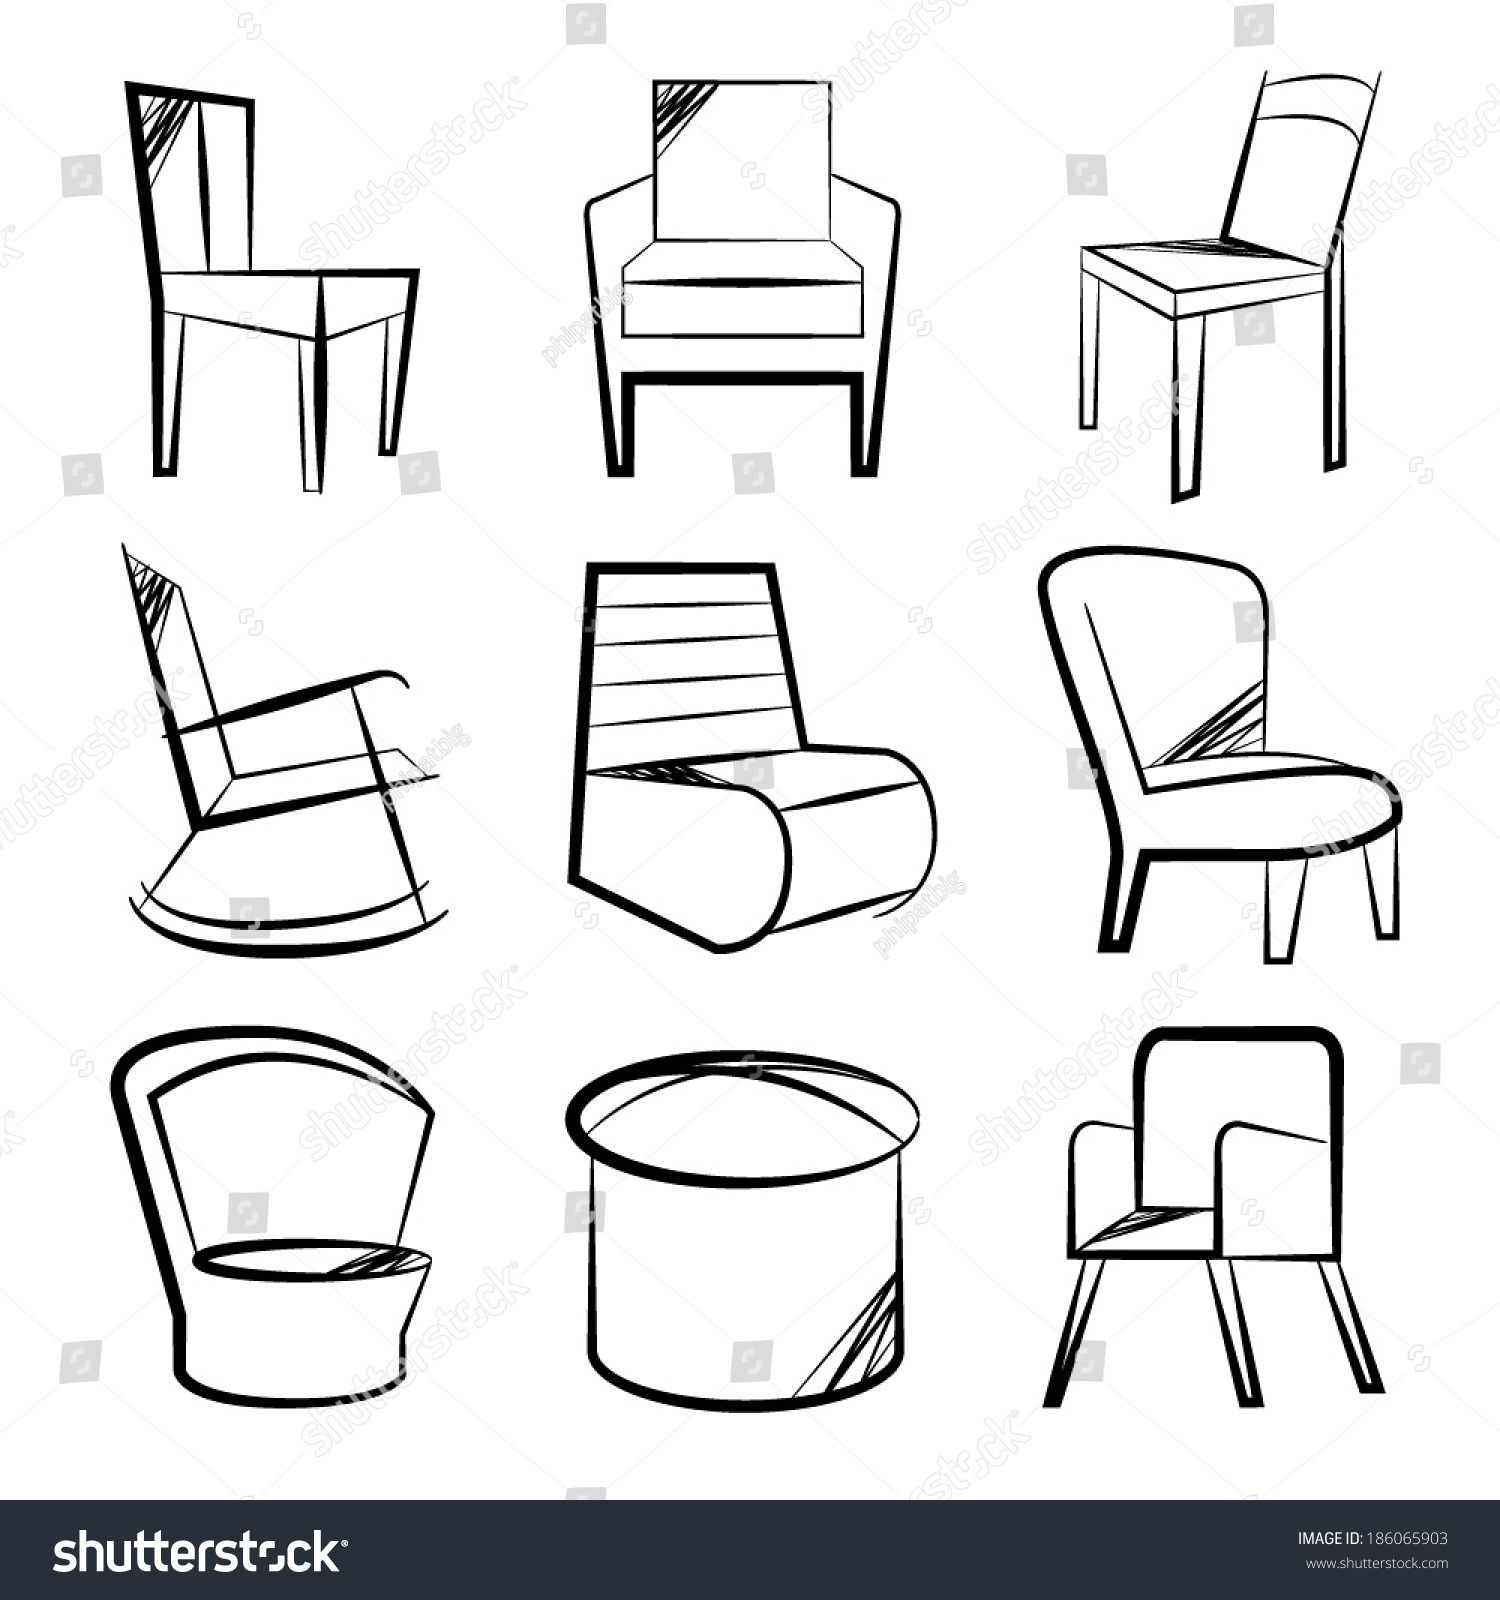 Sketch chair icons set sofa set stock vector 186065903 shutterstock